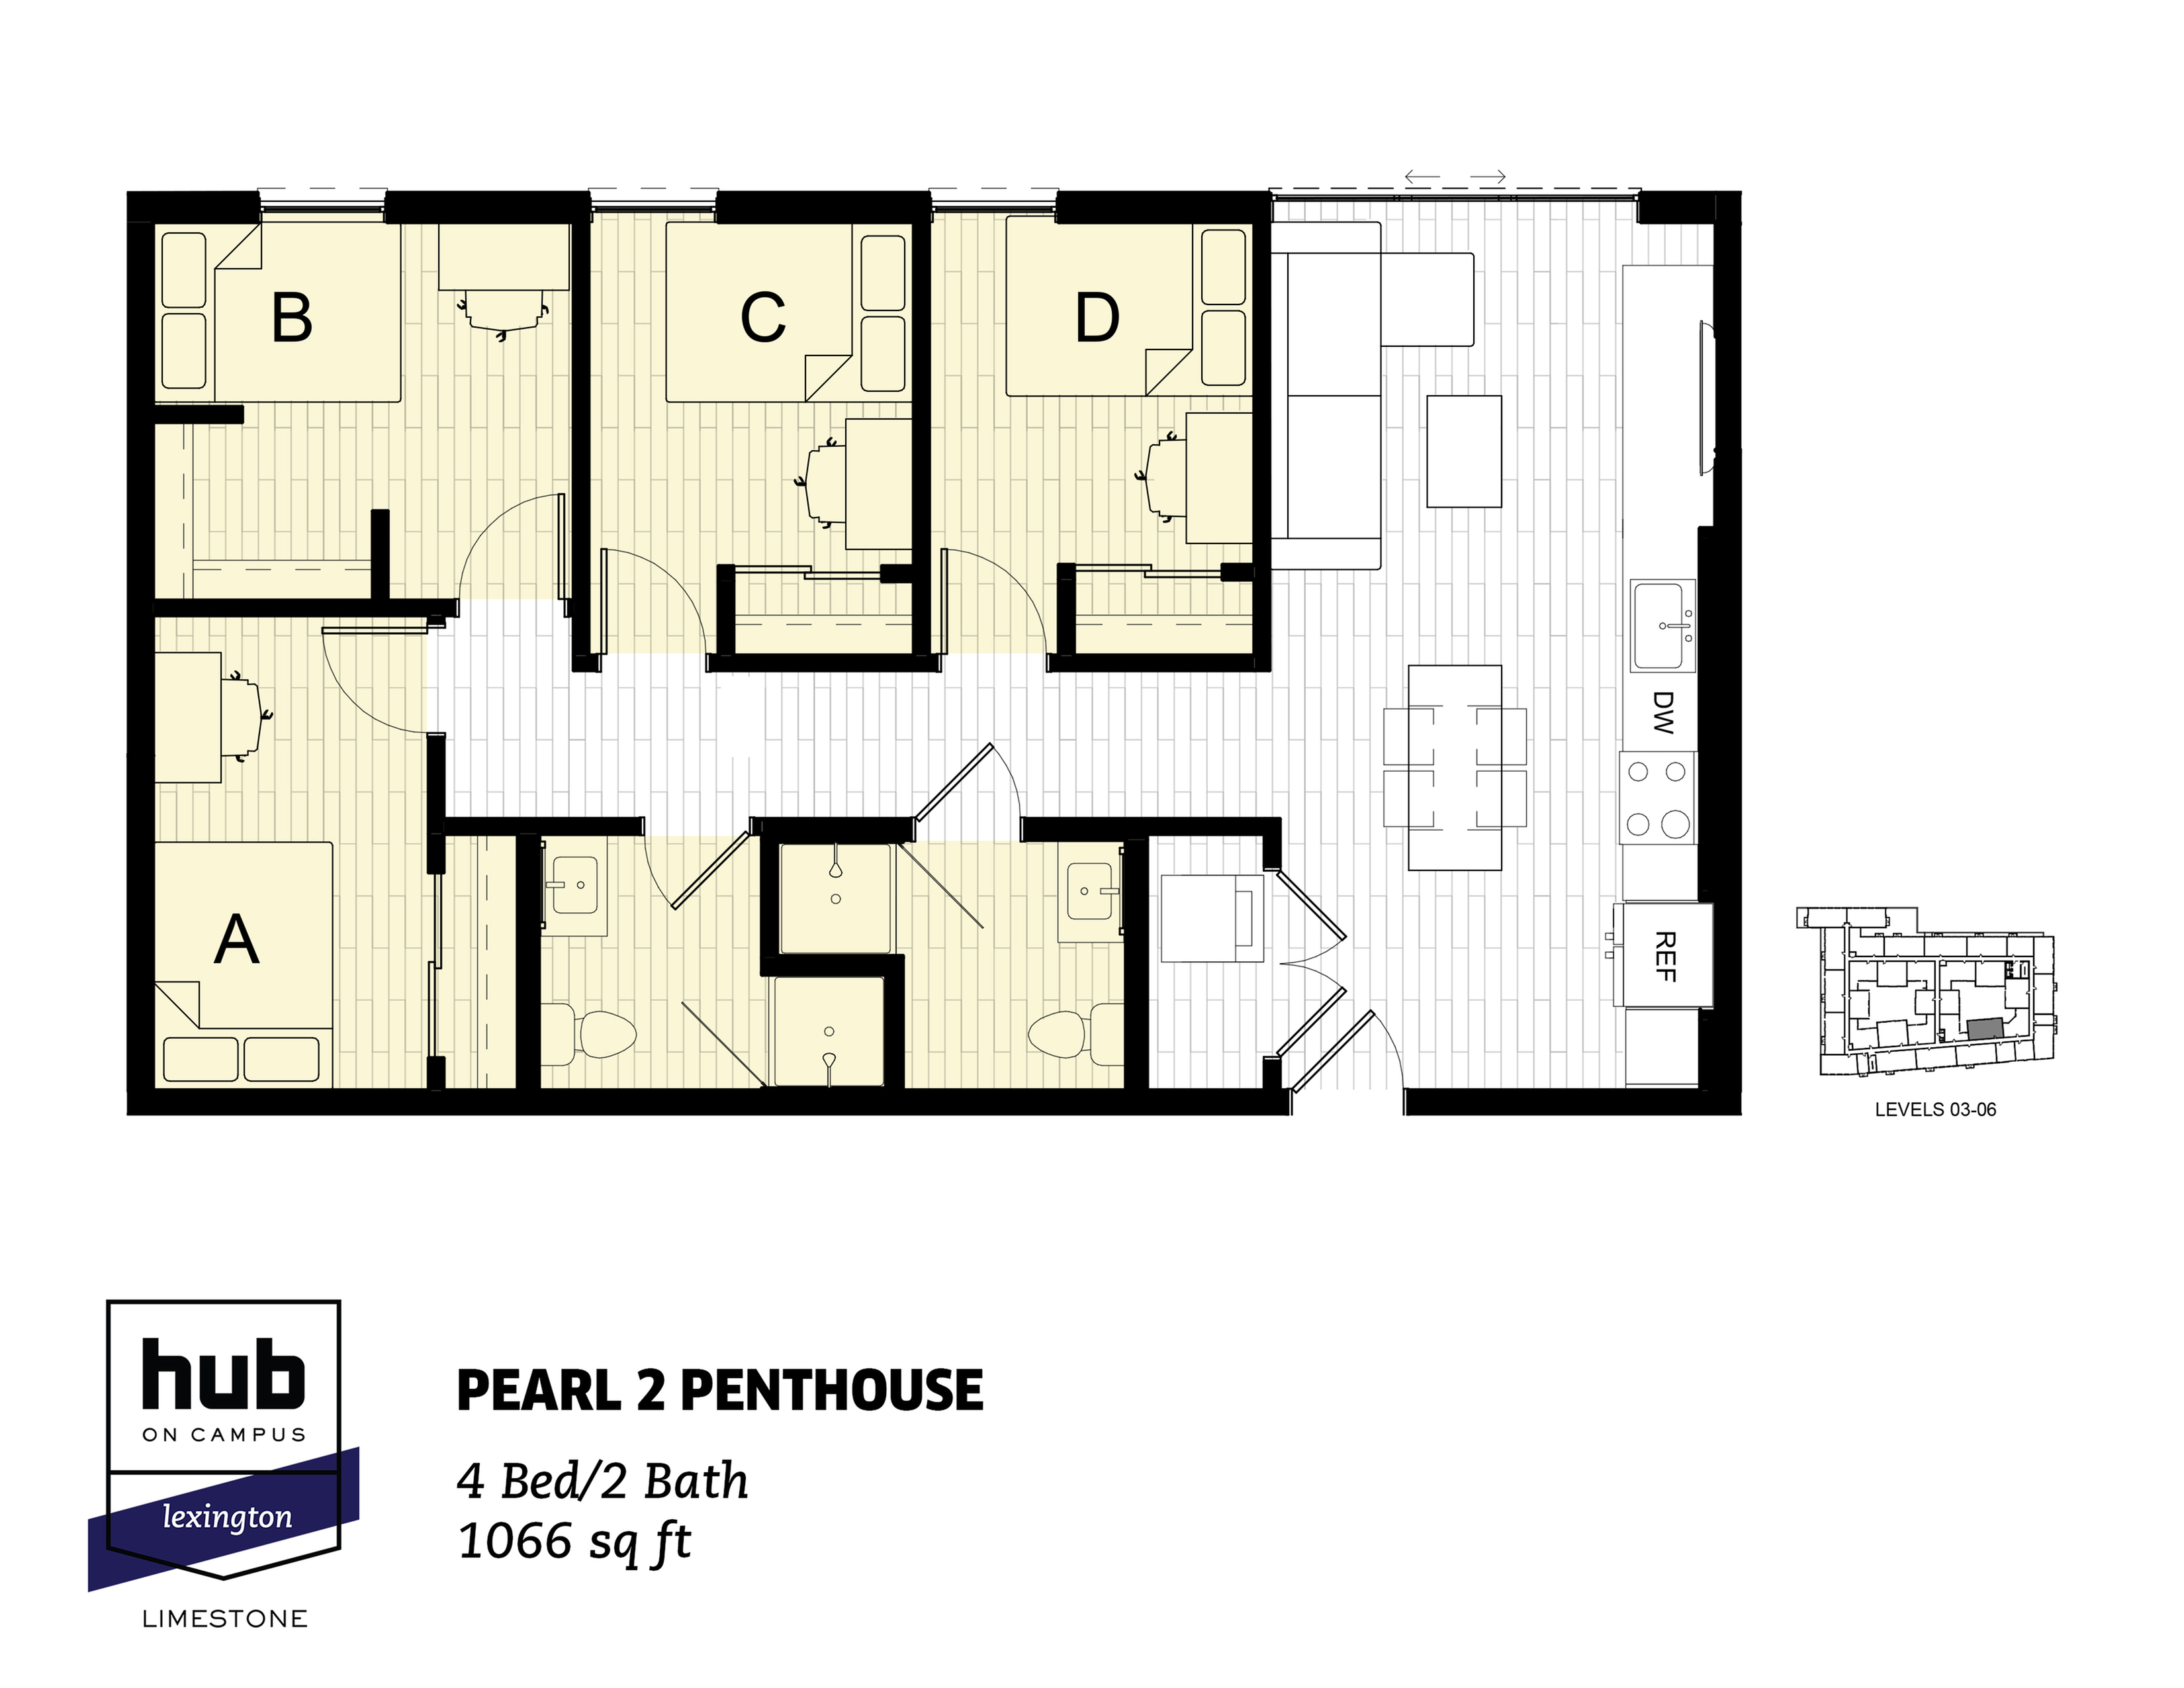 Pearl 2 Penthouse